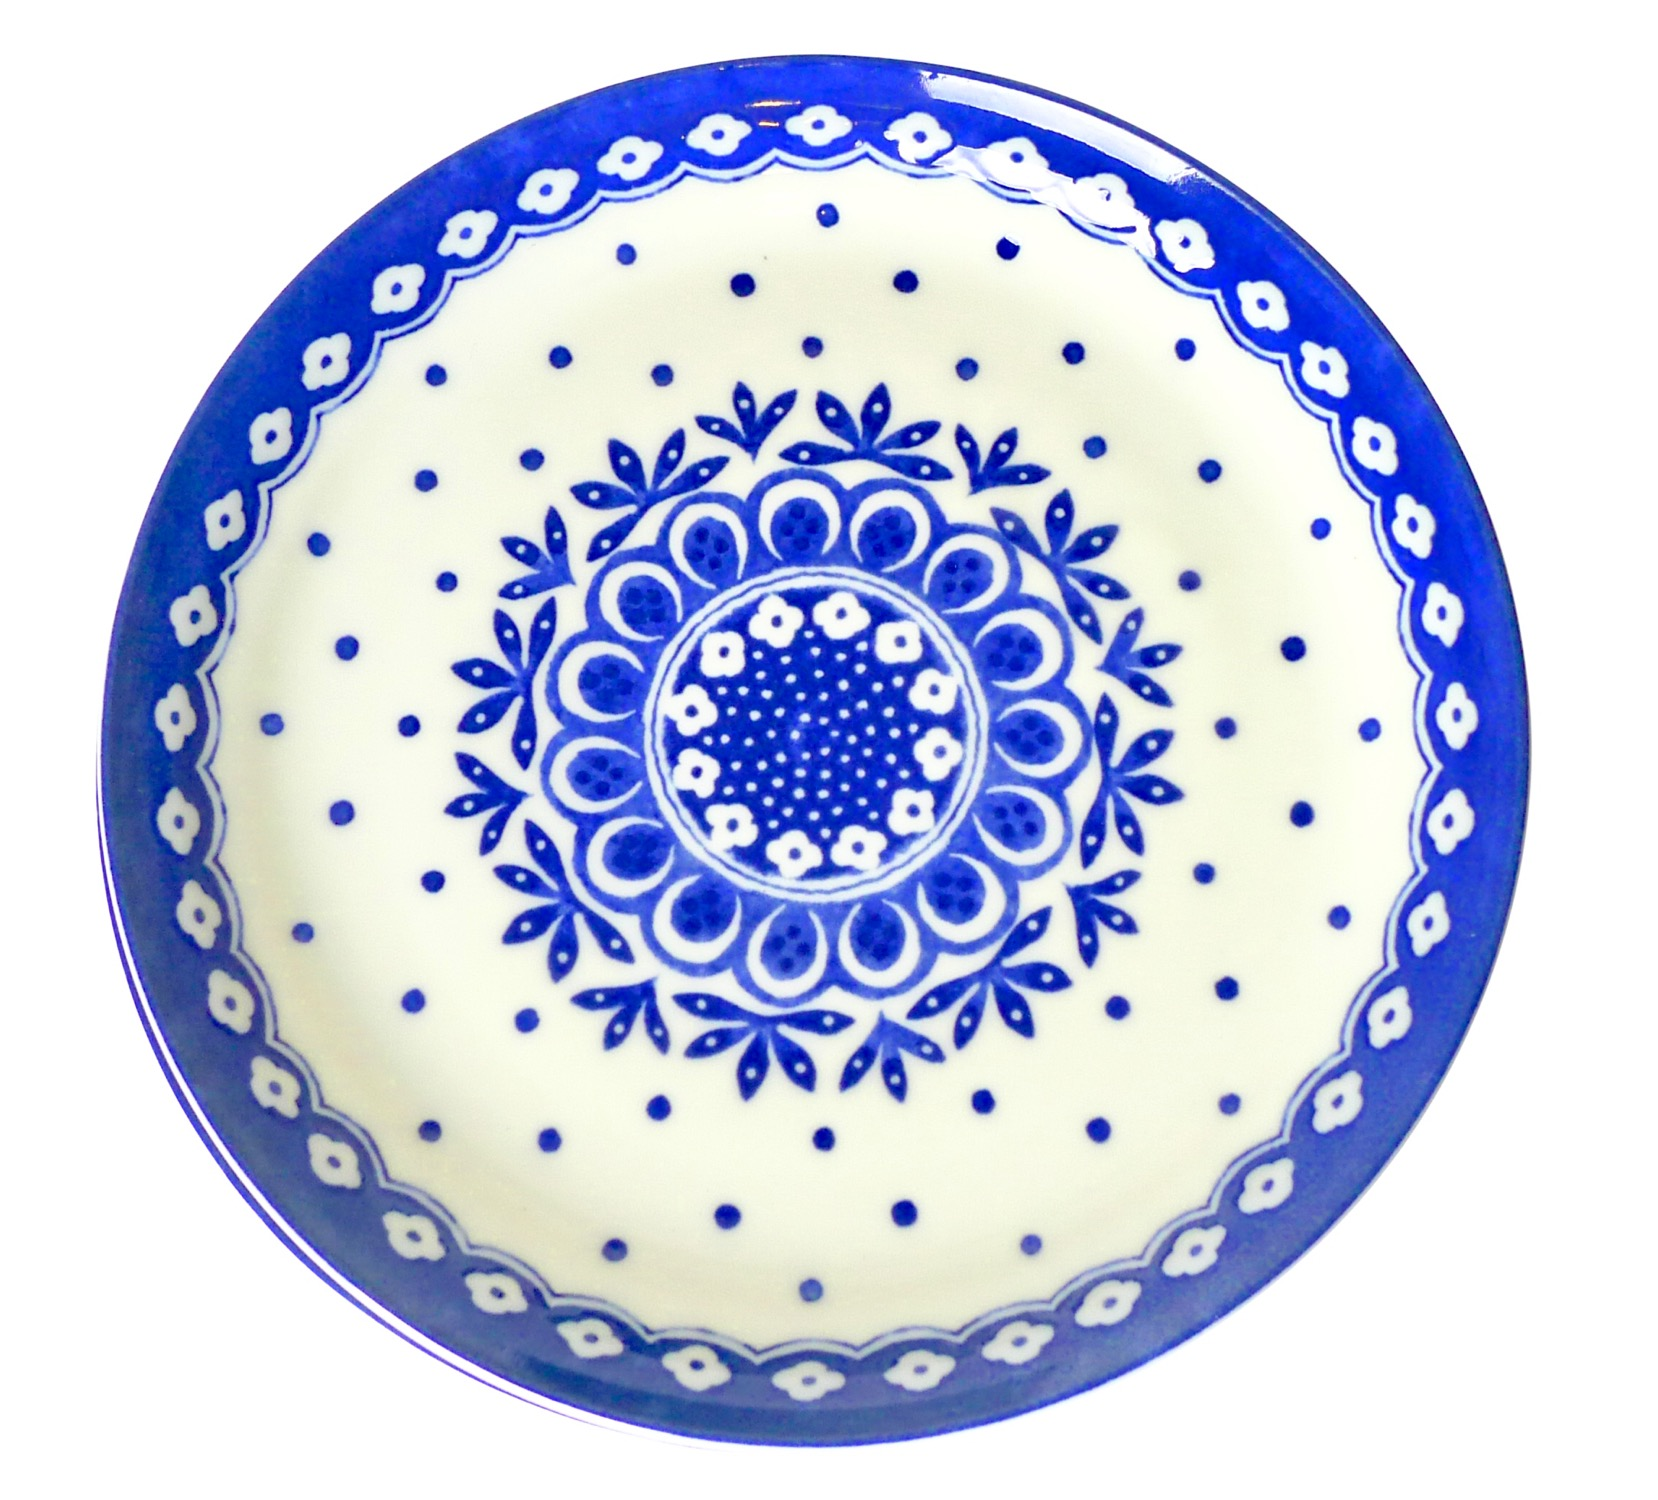 Image of White Porcelain Plate with Blue Geometric, 10-Inch, Set Of Four